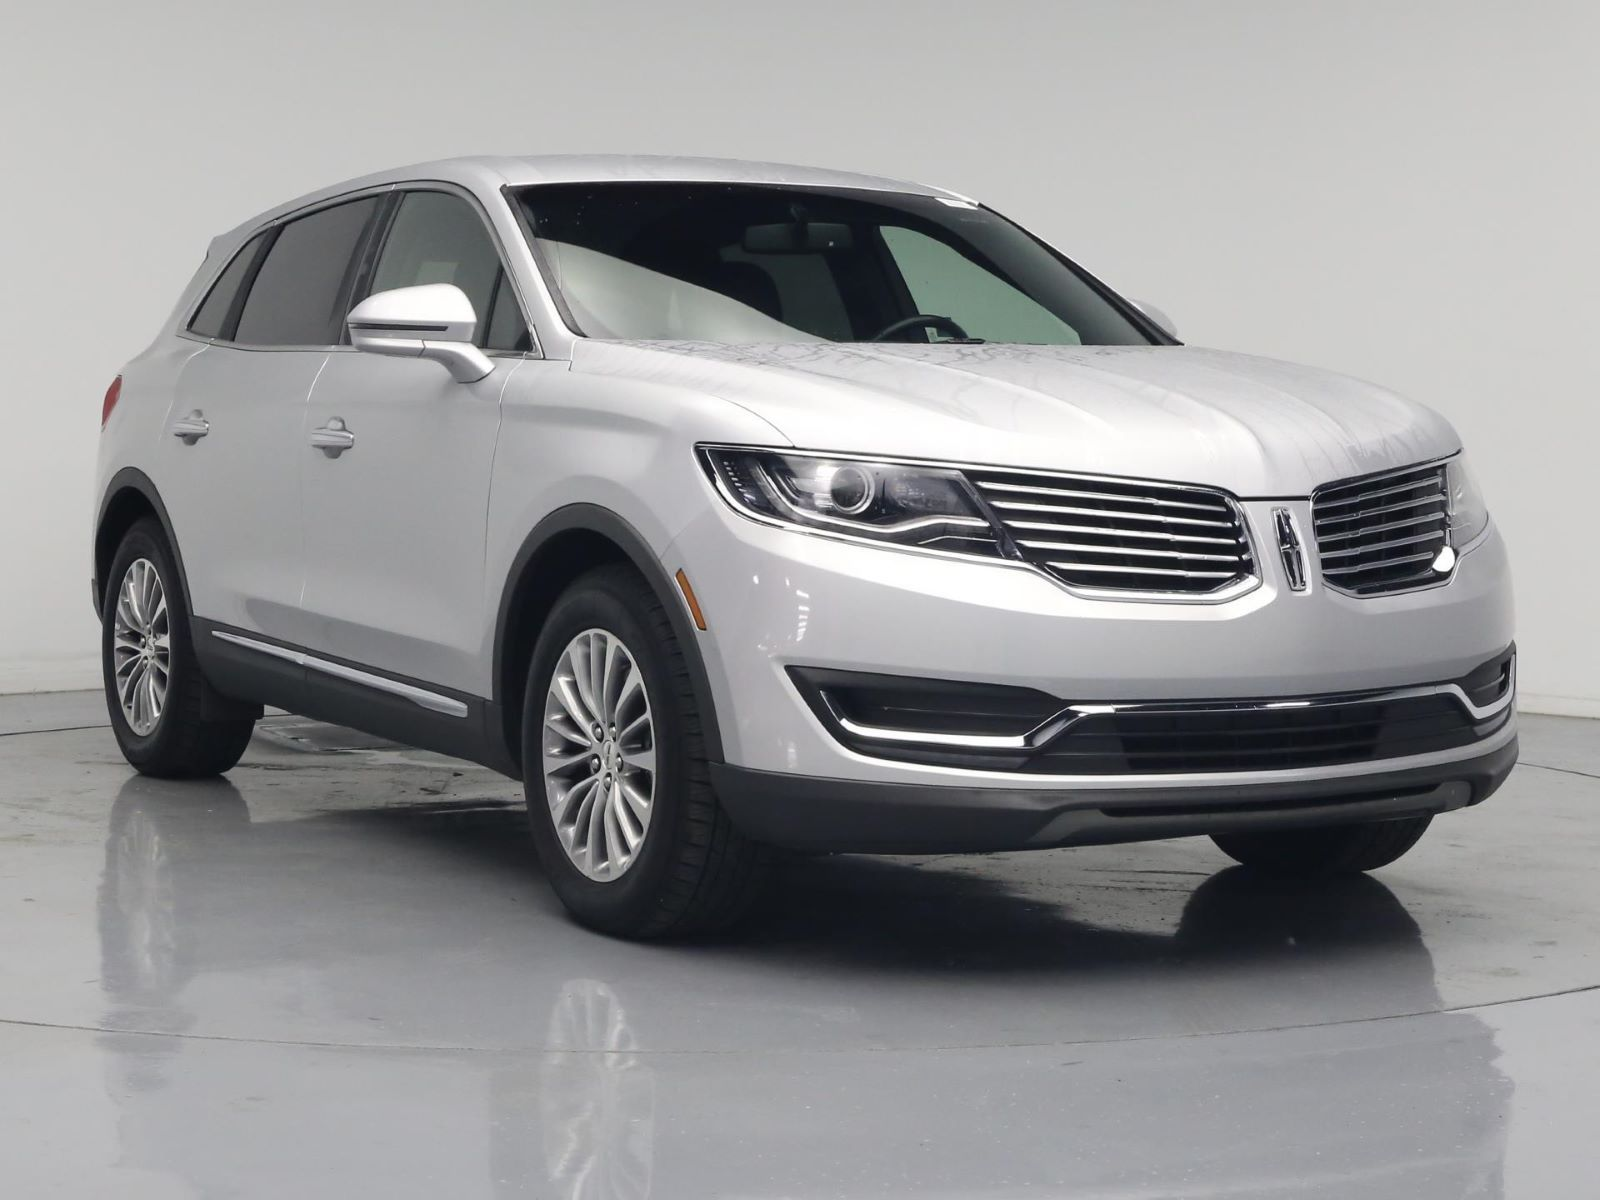 Used 2016 Lincoln MKX in Nashville, Tennessee CarMax